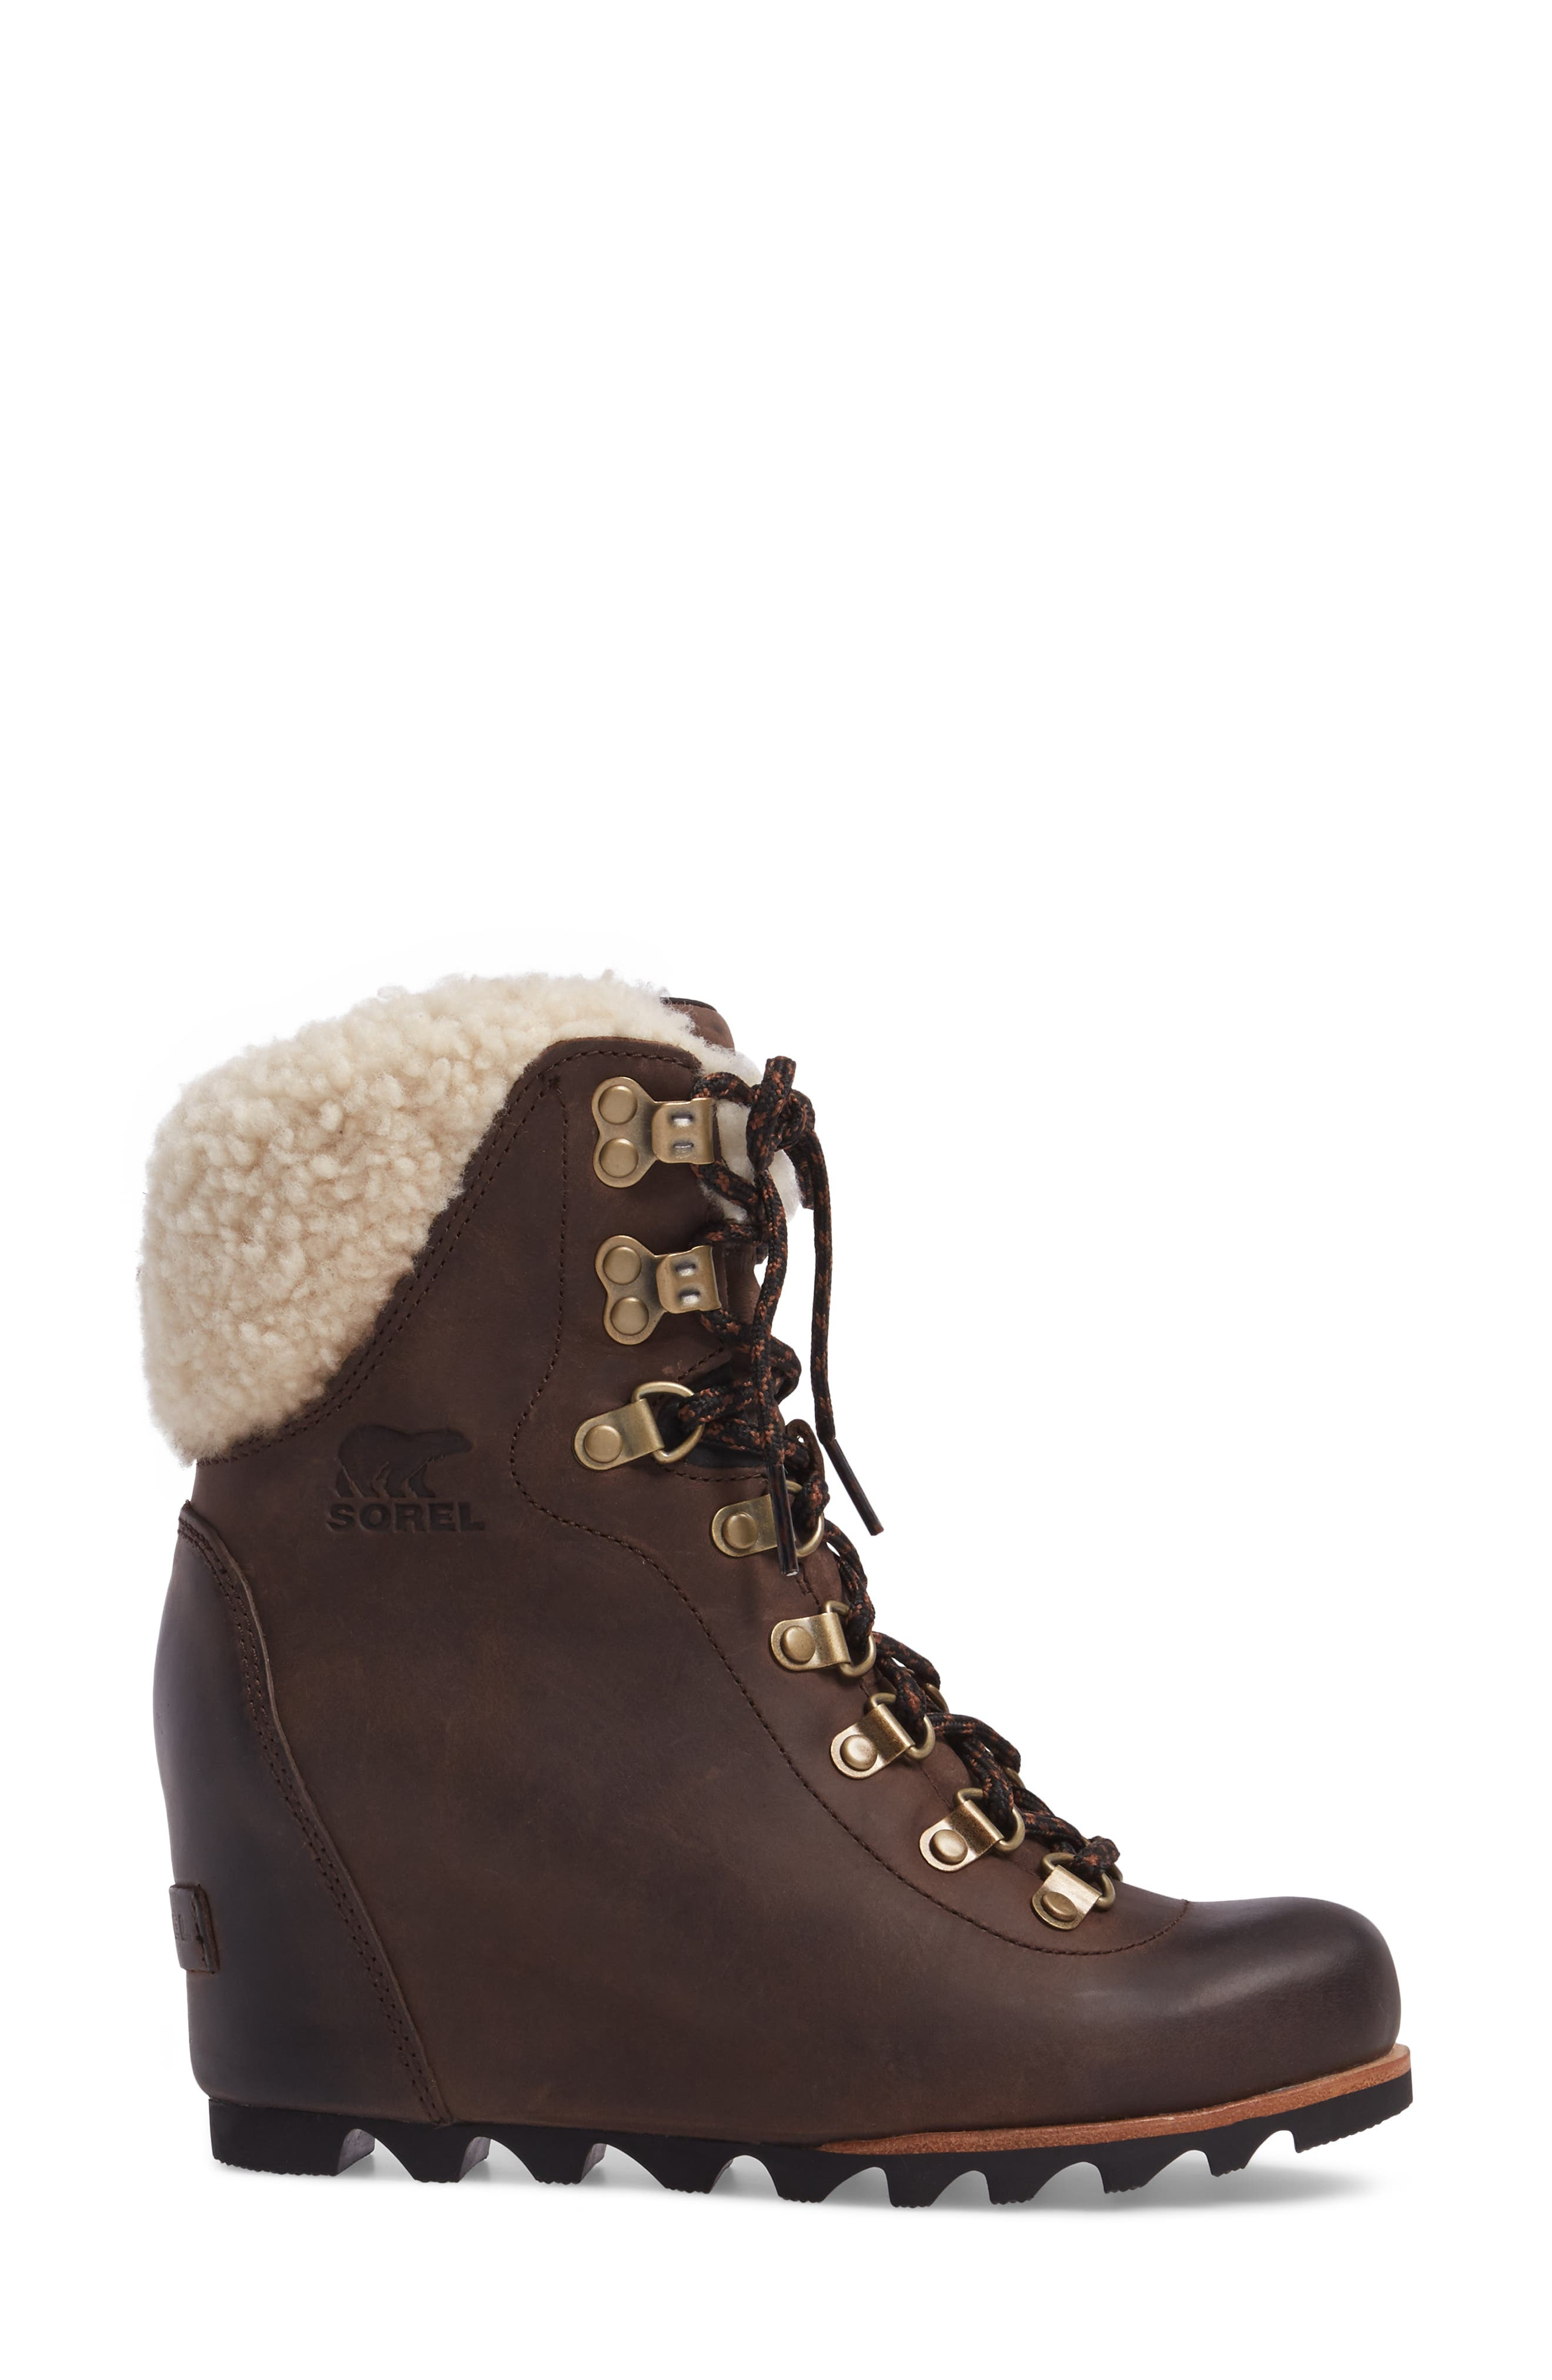 Conquest Genuine Shearling Cuff Waterproof Boot,                             Alternate thumbnail 3, color,                             200